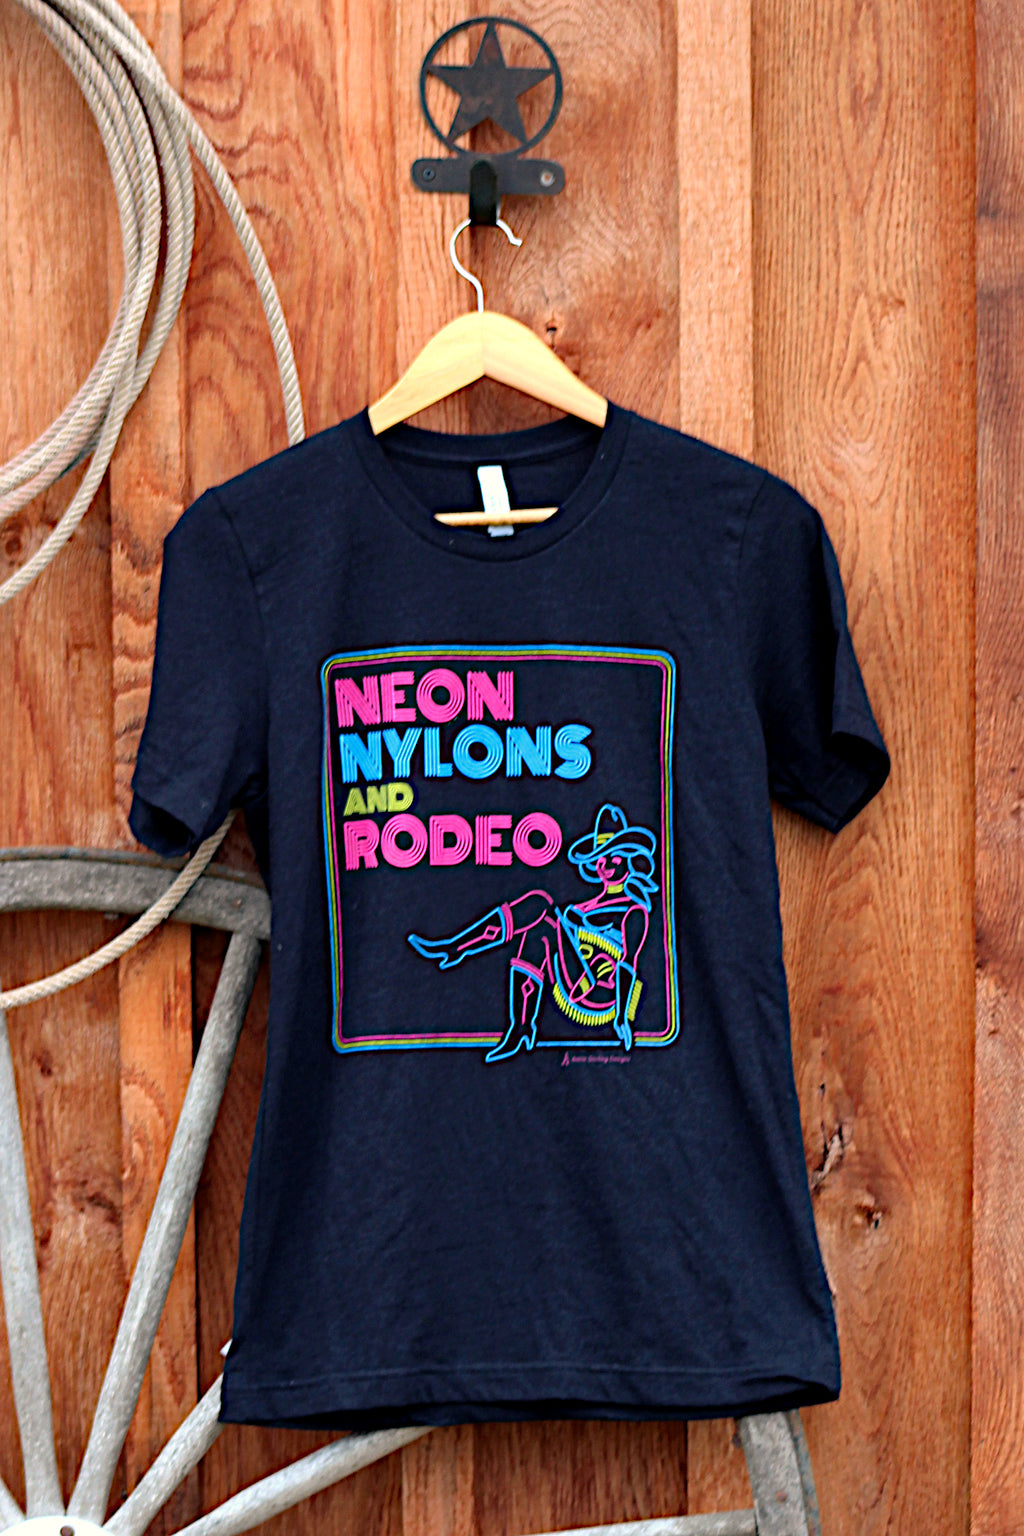 *LIMITED* Neon Nylons and Rodeo